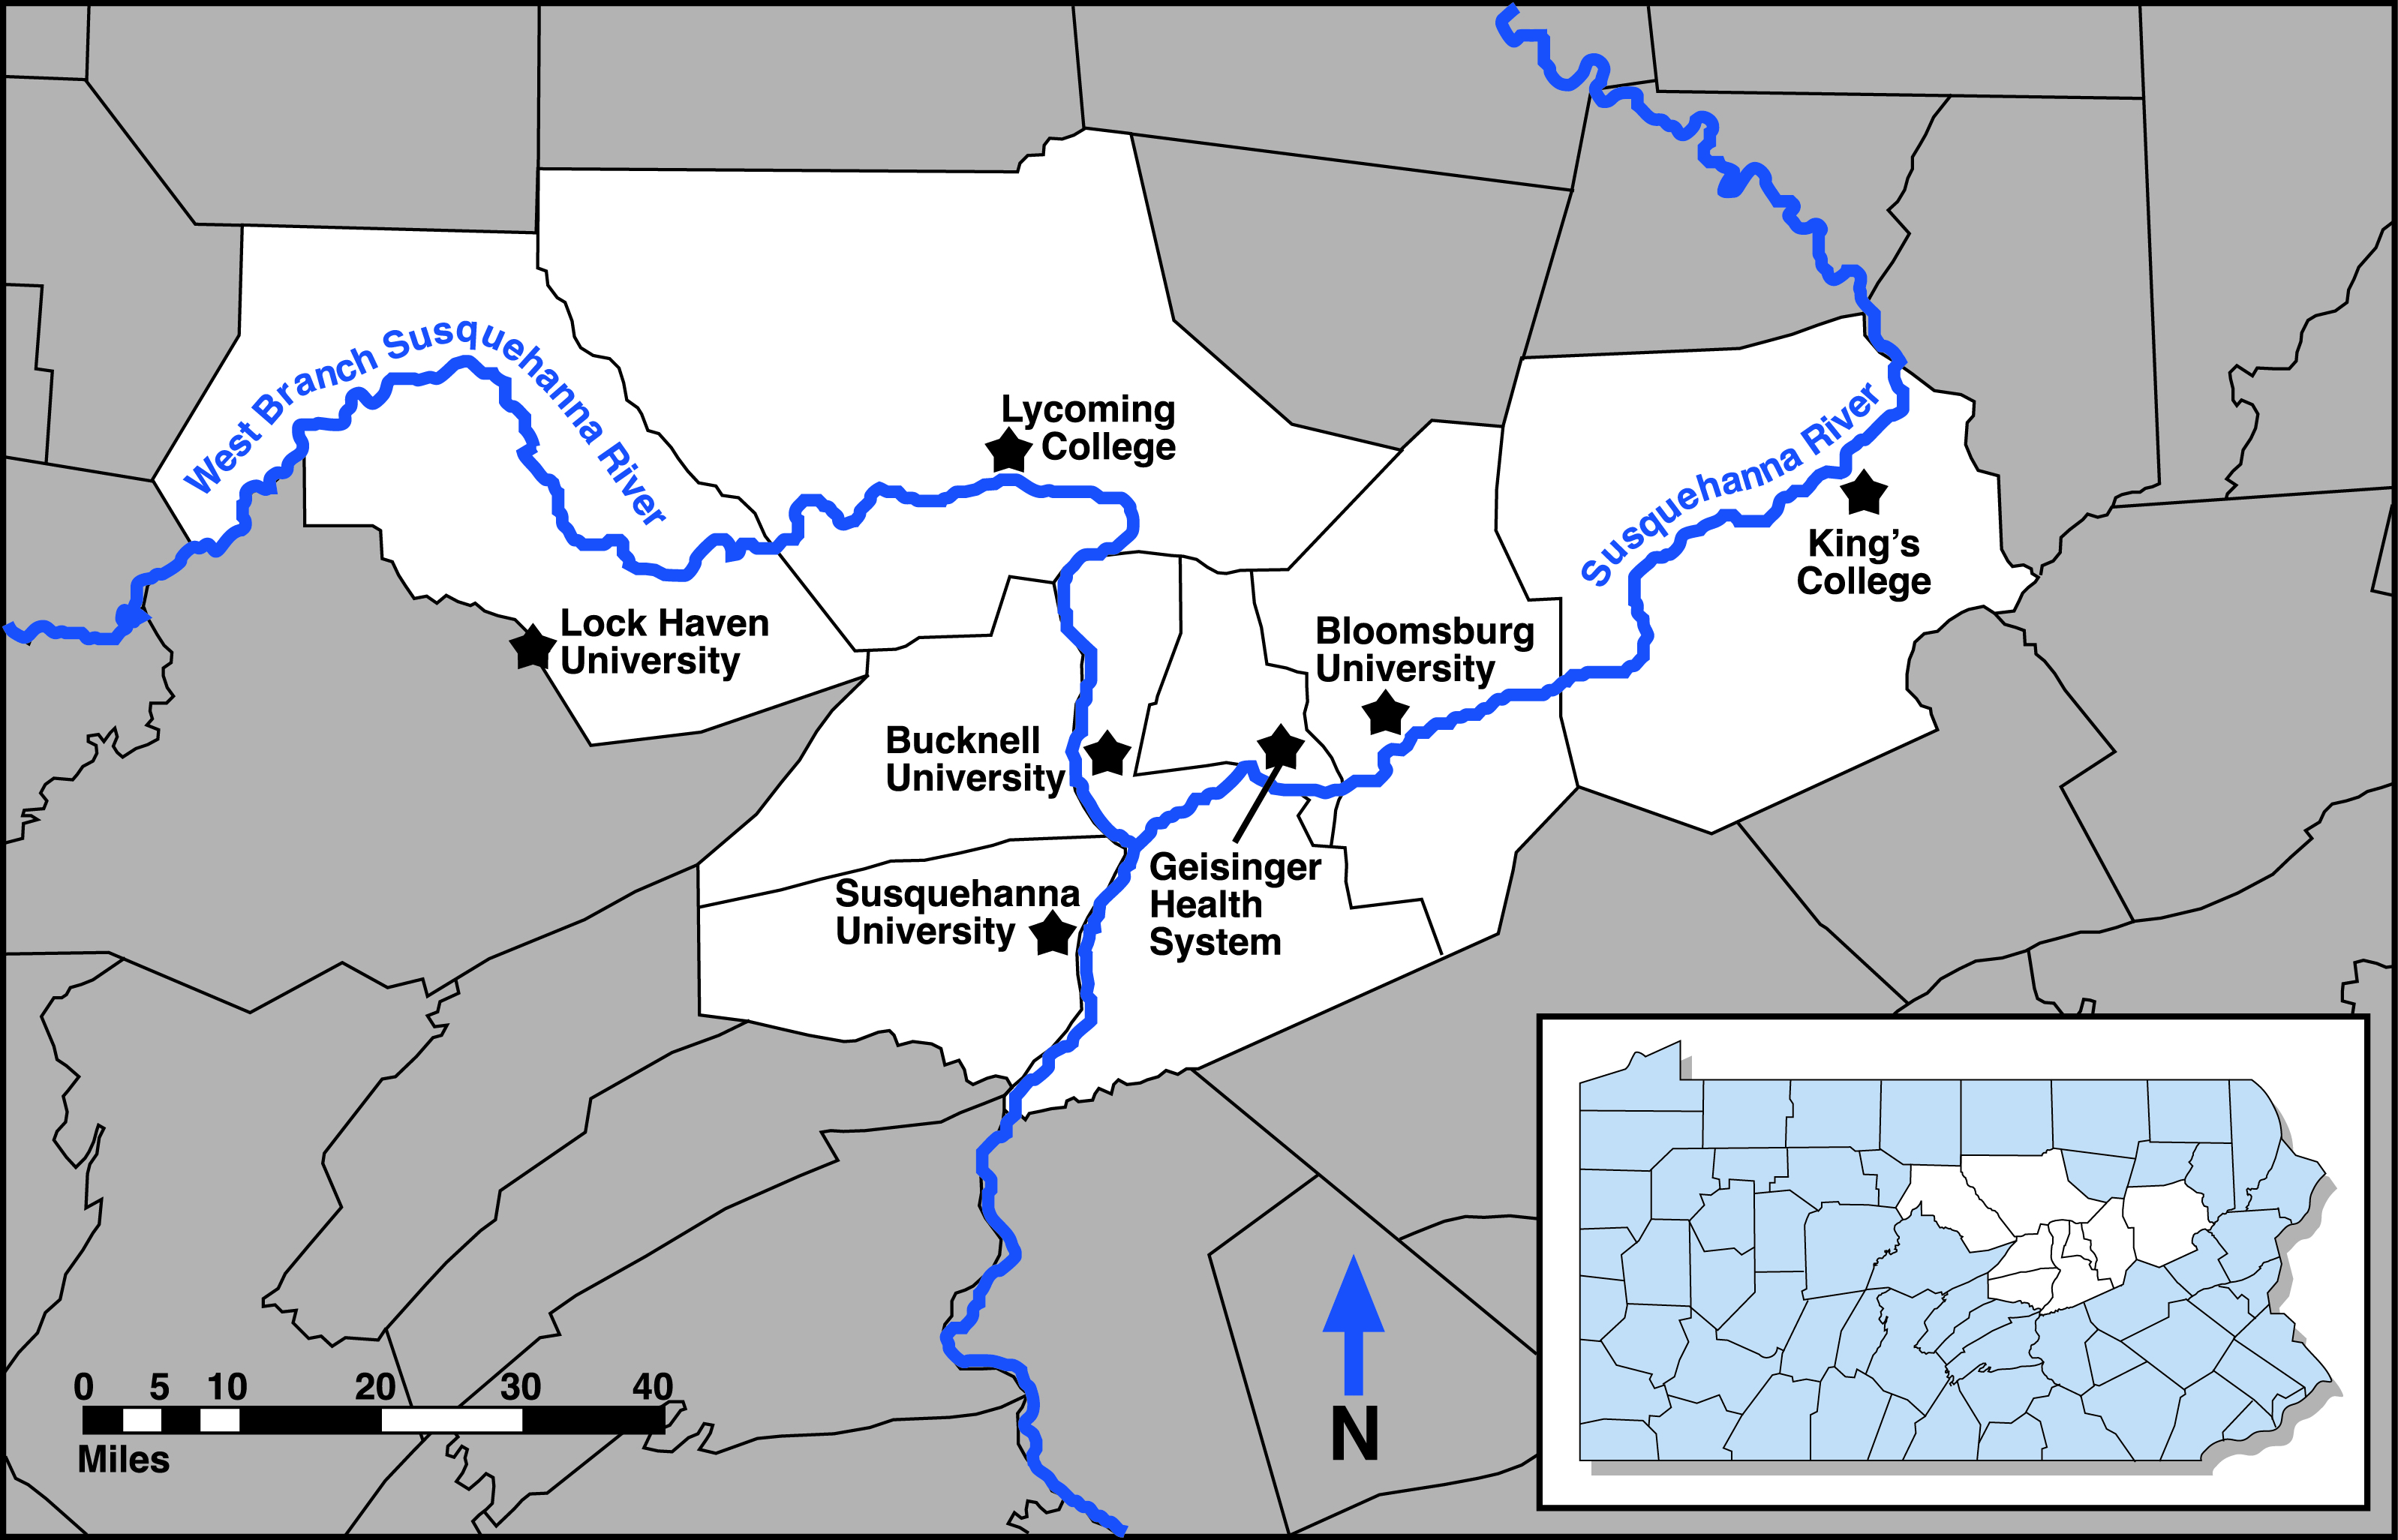 About – SRHCES.org on shenandoah river map, chesapeake bay, sacramento river map, lake erie, pee dee river map, hudson river, ohio river, pawcatuck river map, missouri river, red river, allegheny river map, scioto river map, colorado river, mississippi river, monongahela river, james river, allegheny river, potomac river, columbia river map, snake river, city island, columbia river, connecticut river map, adirondack mountains, san joaquin river map, delaware water gap, roanoke river map, seneca river map, hudson river map, tombigbee river map, delaware river, saskatchewan river map, juniata river map, connecticut river, potomac river map, delaware river map, james river map, mohawk river map, tennessee river map,